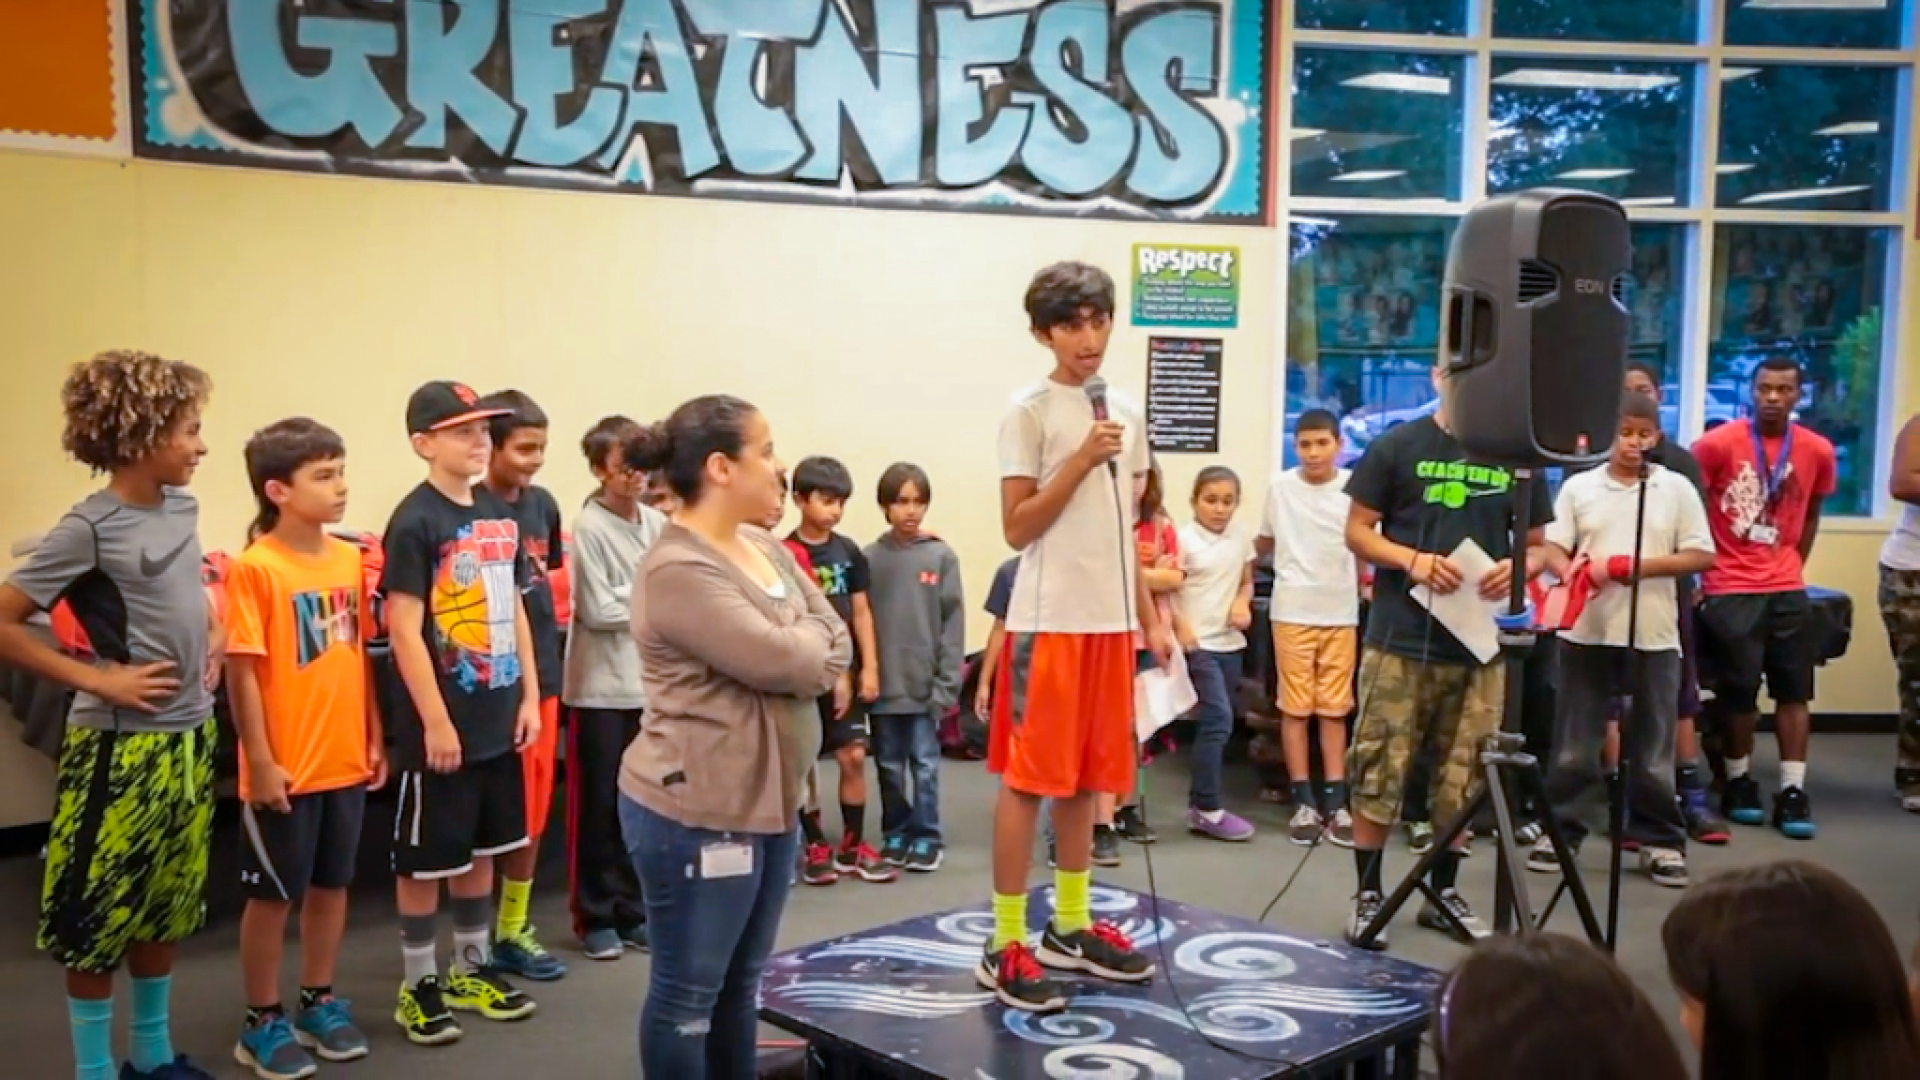 a 5th grade boy stands on a small stage in front of a gathering of other kids his age